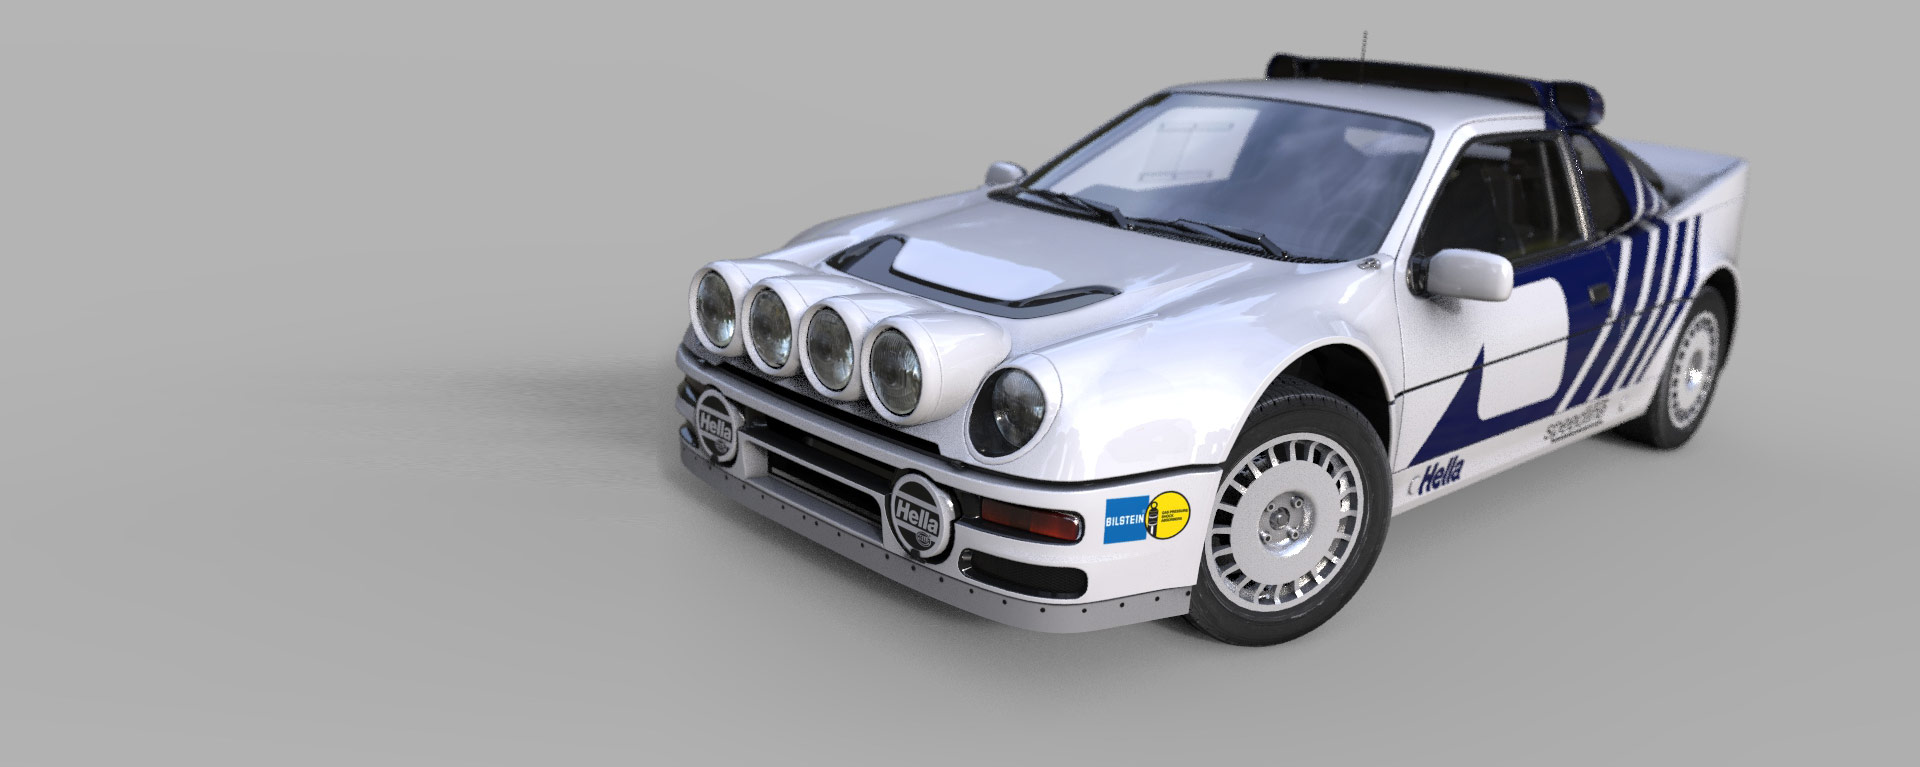 EVO200 Rally Replica – Build your own Ford RS200 race car